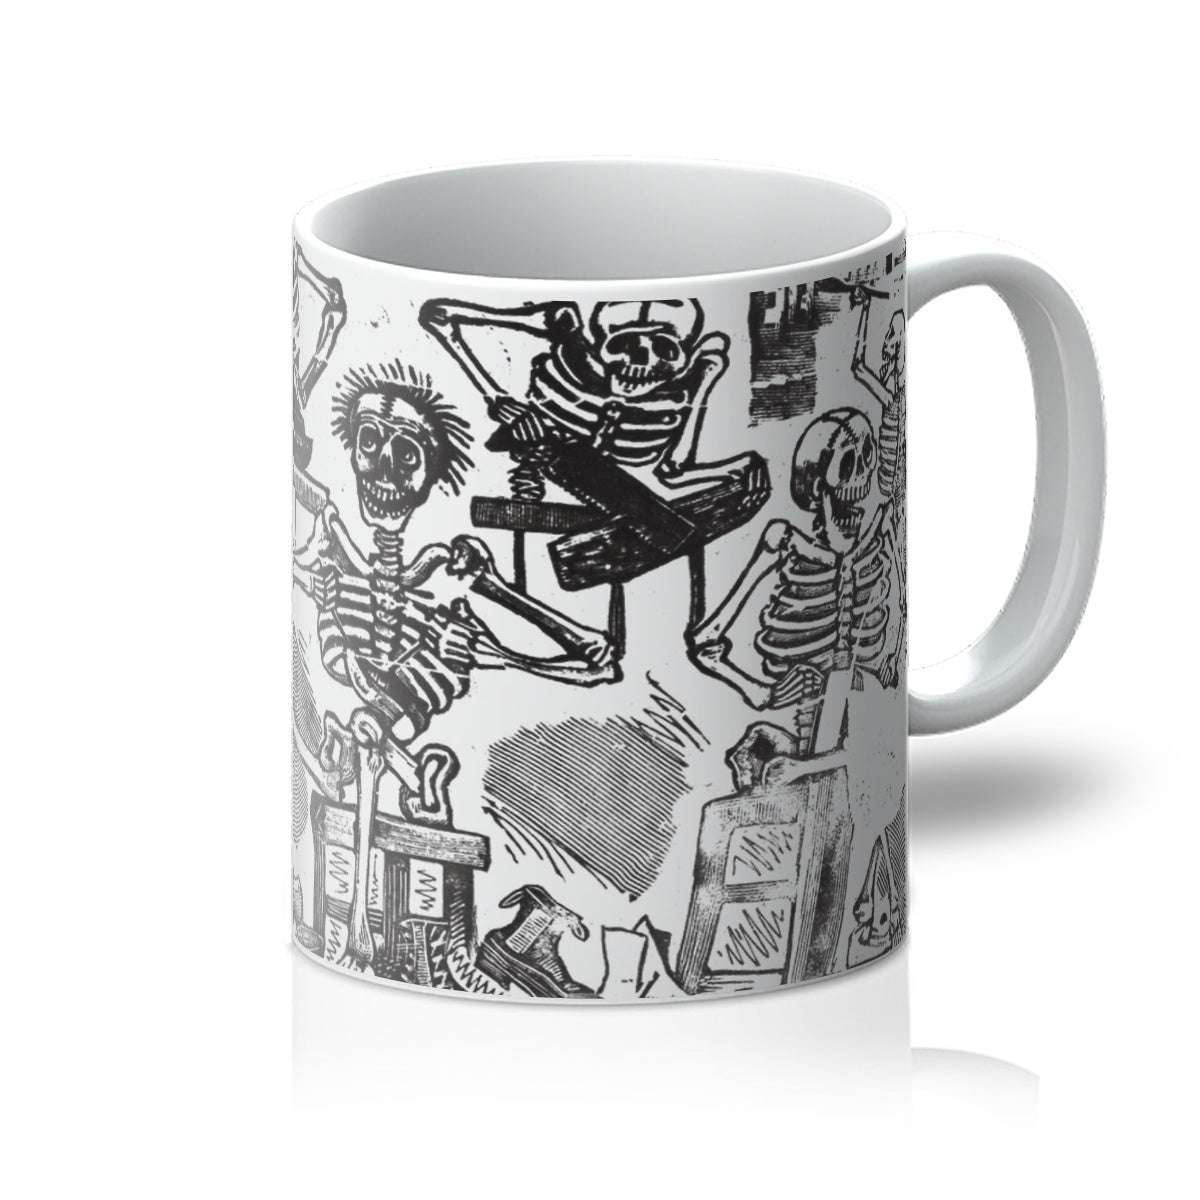 Skeletons as Artisans by José Guadalupe Posada, c. 1890–1910 - Mug